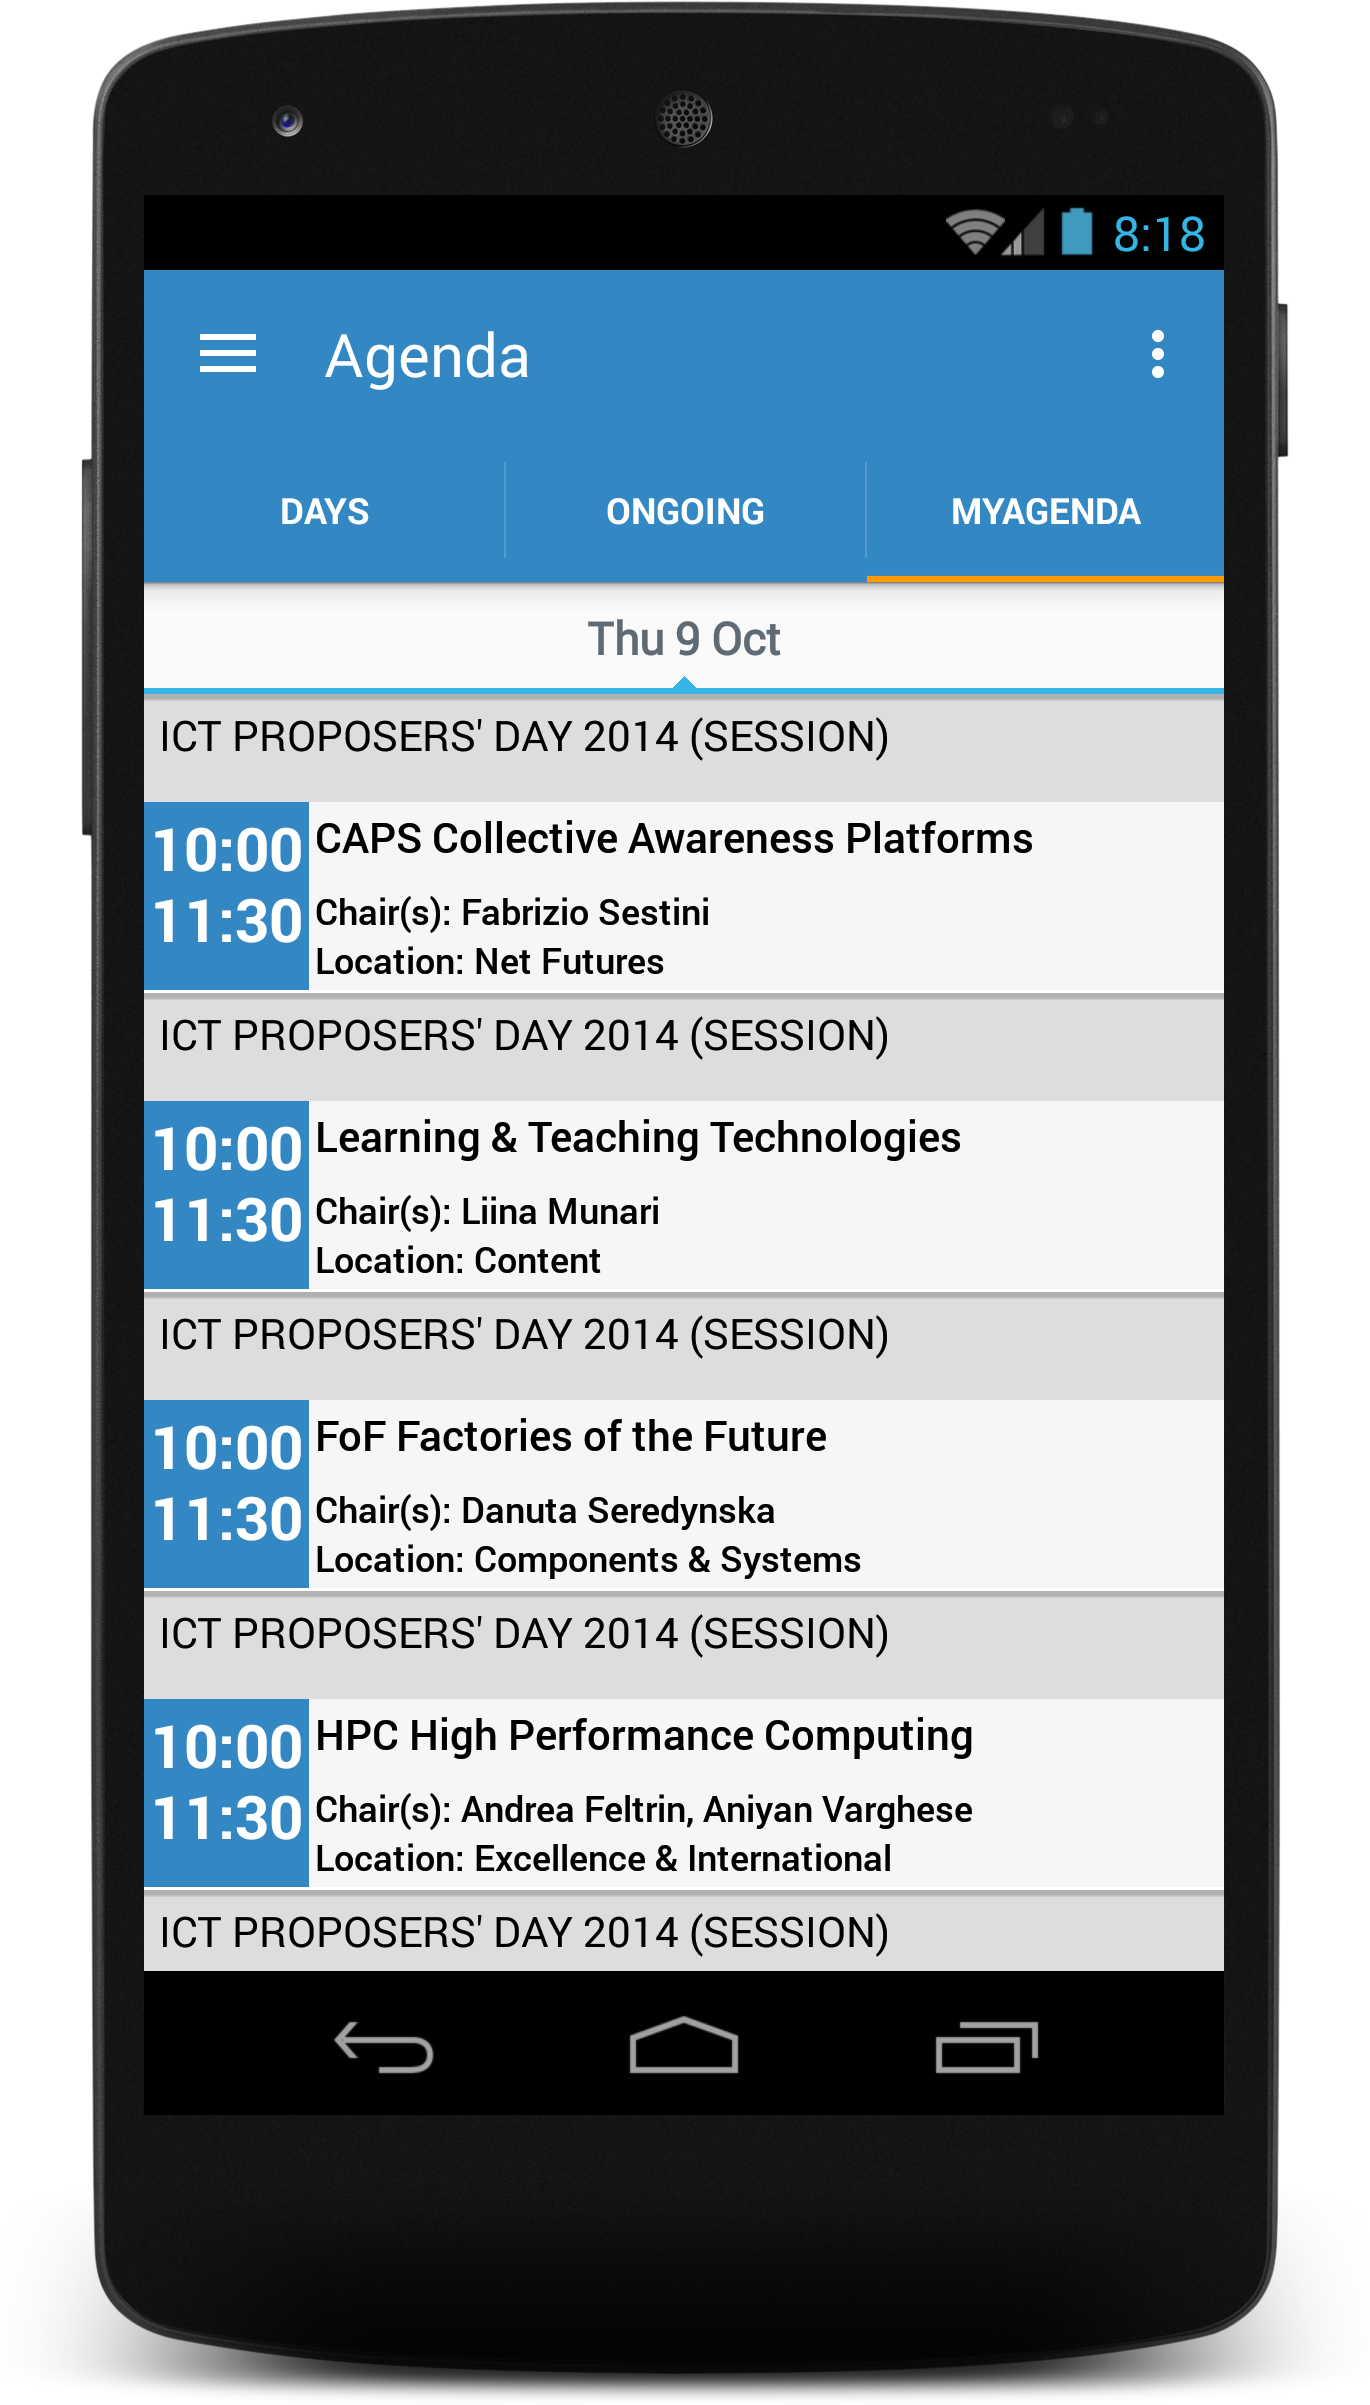 Conference4me | Mobile Conference Assistant | Conference4me is an